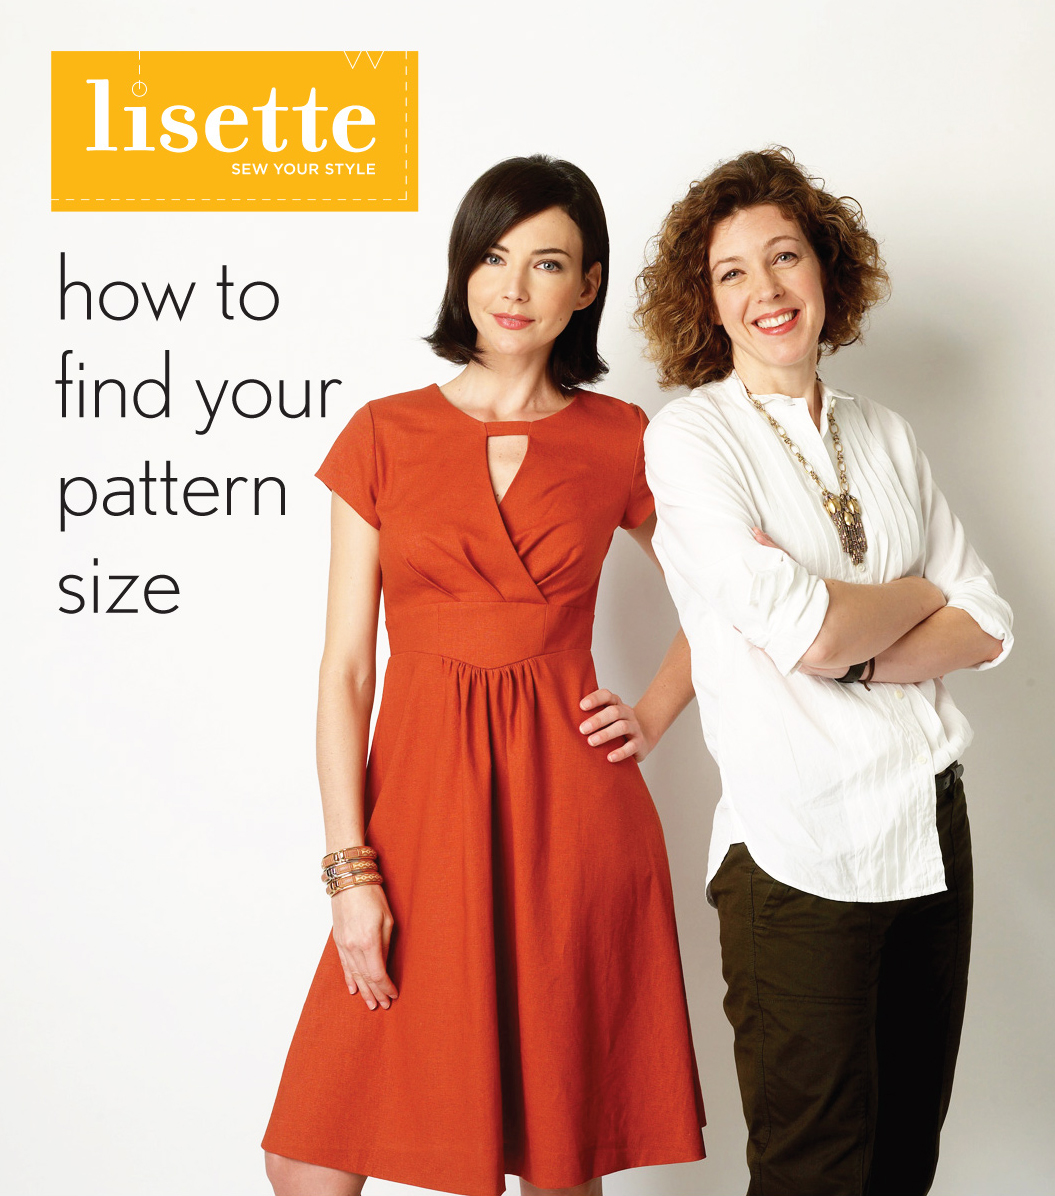 Lisette Patterns Cool Ideas